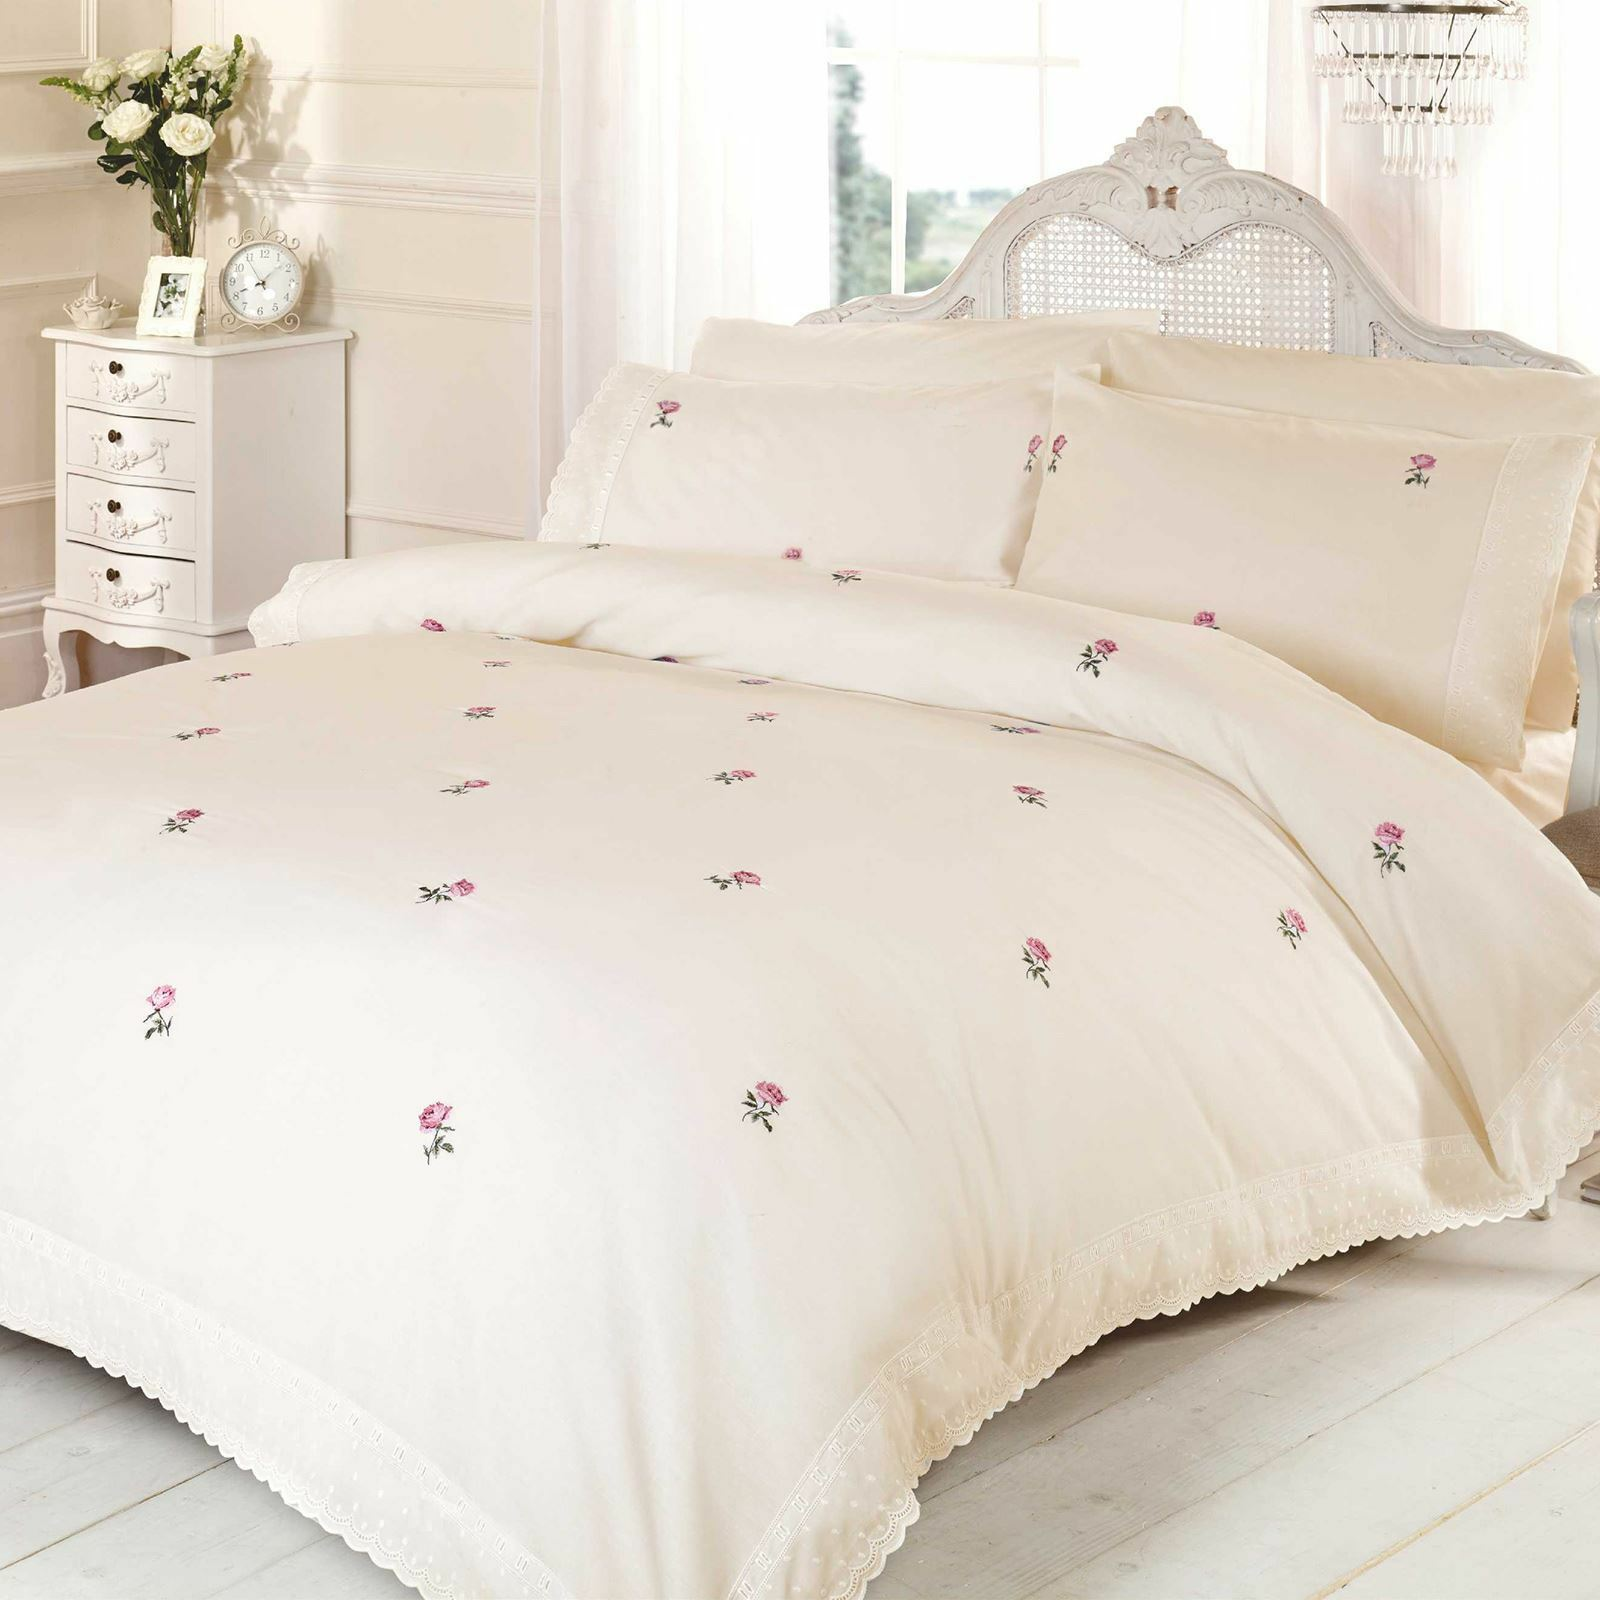 ALICIA FLORAL CREAM & PINK UK KING   US QUEEN UNFILLED DUVET COVER & PILLOWCASE